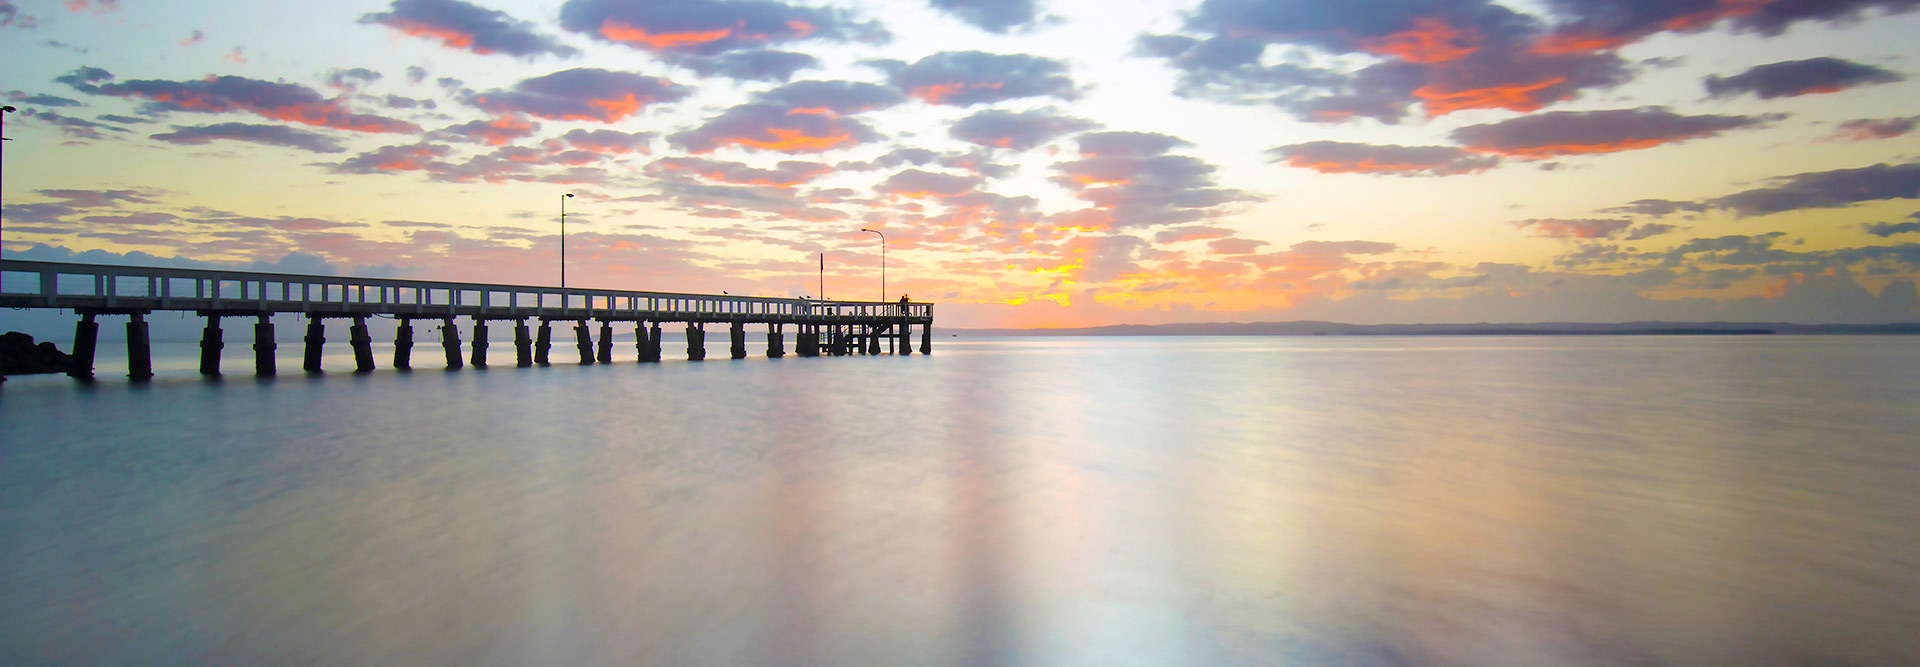 Wellington Point Pier at sunrise